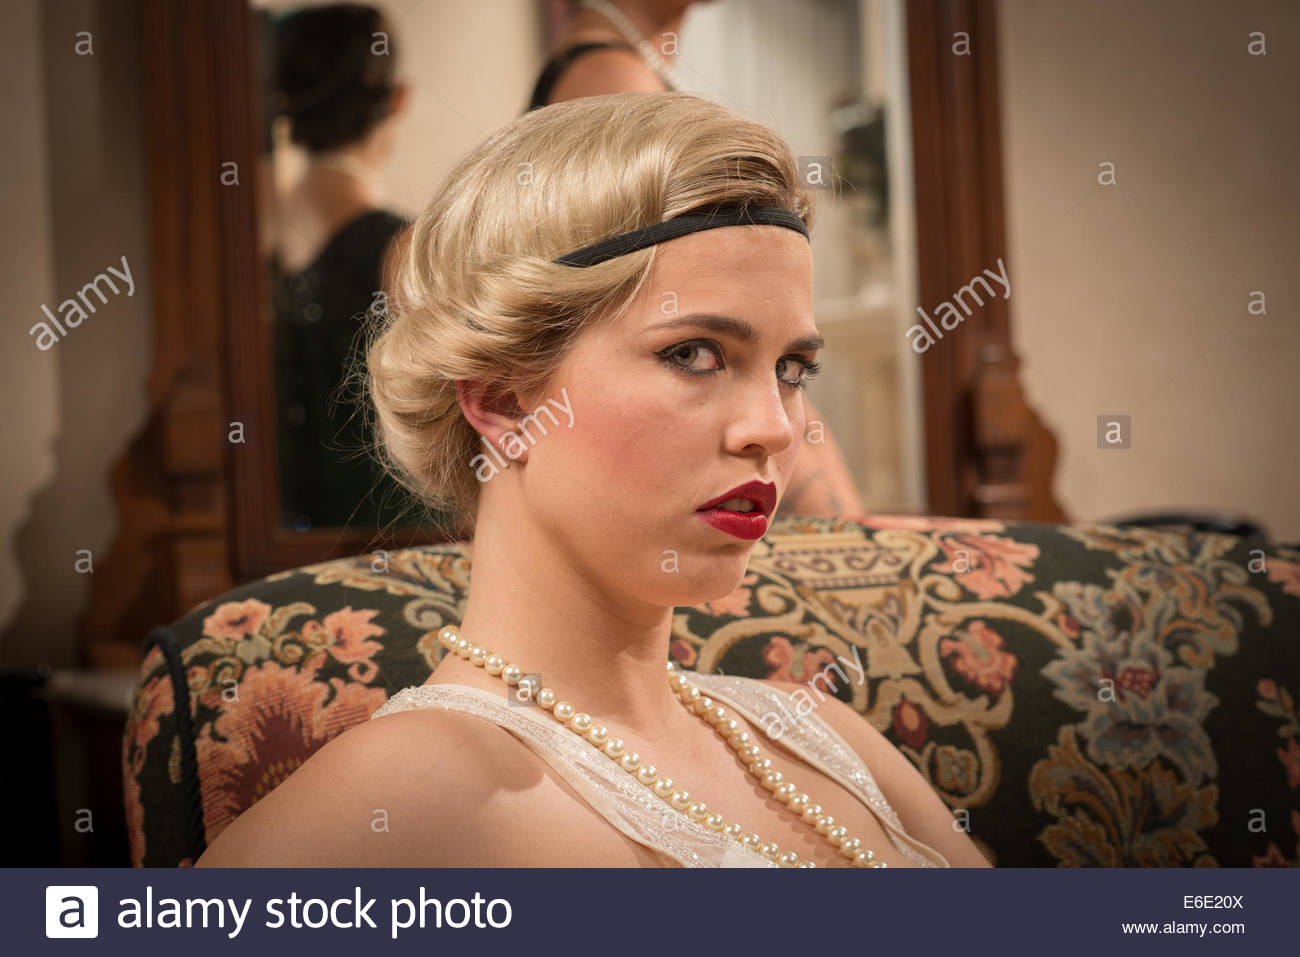 Pearls 1920s Stock Photos Pearls 1920s Stock Images Page 3 Alamy